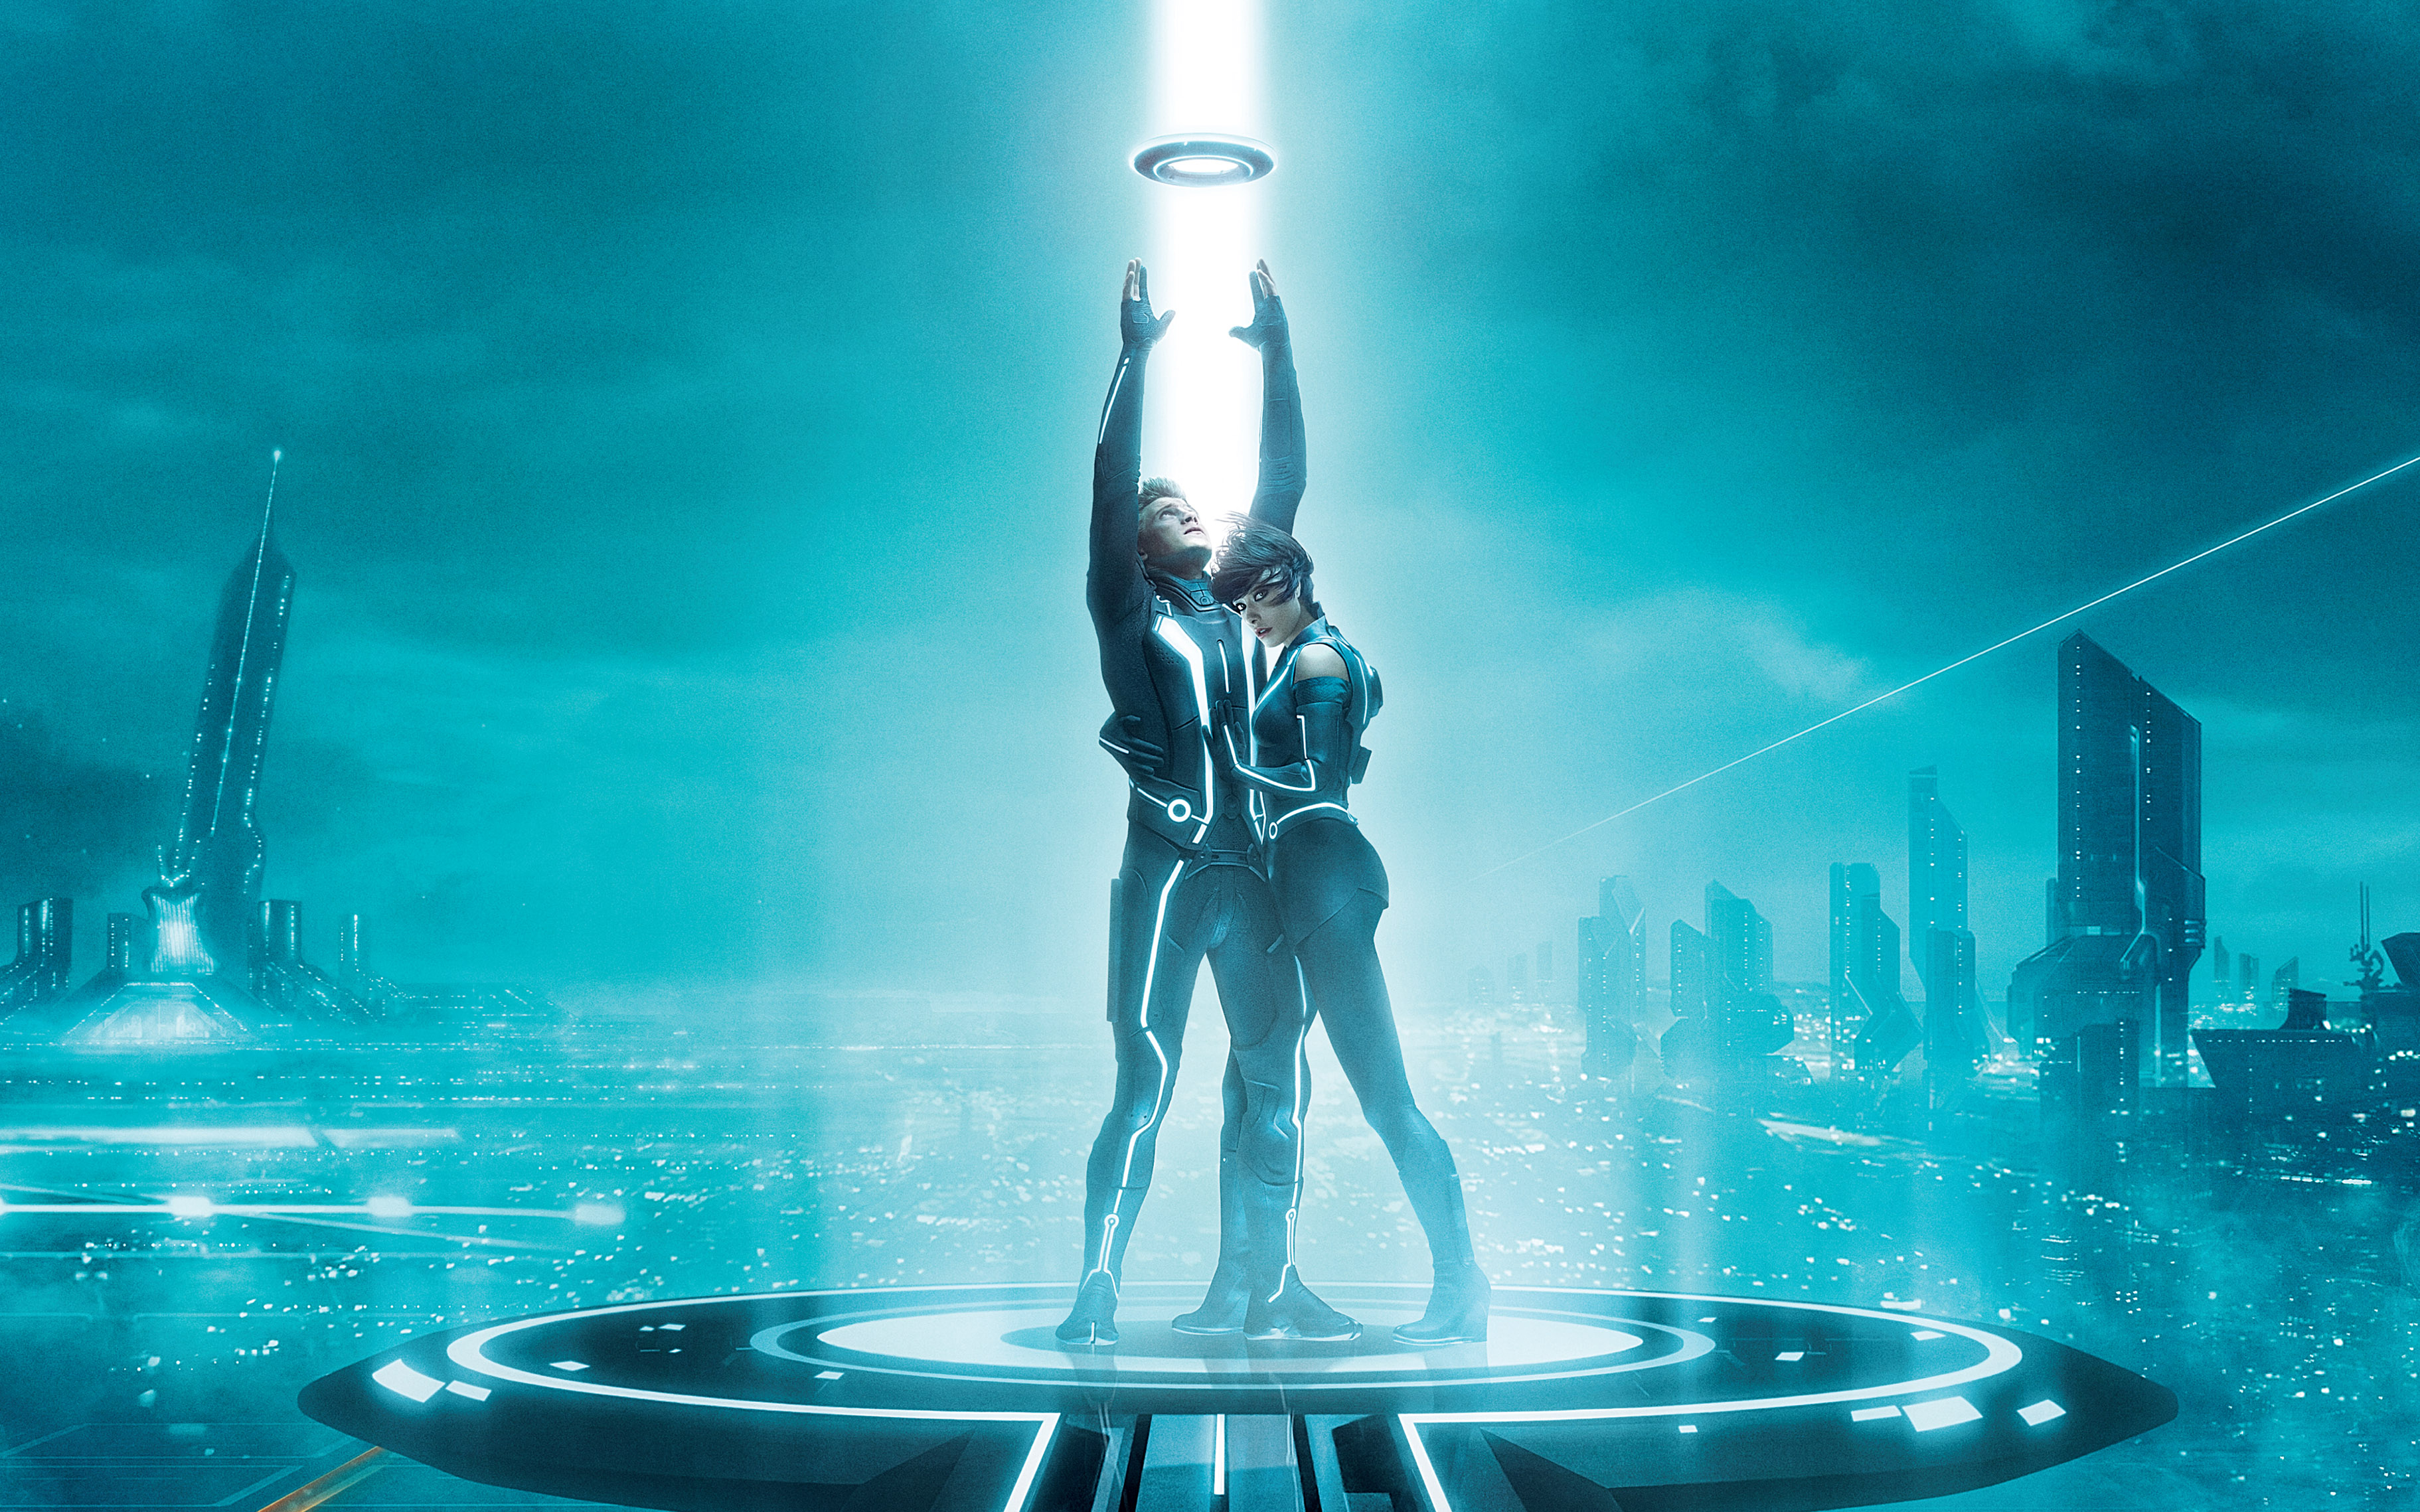 Tron Legacy Extra Large wallpapers 2   HQ Wallpapers   HQ Wallpapers 3645x2278